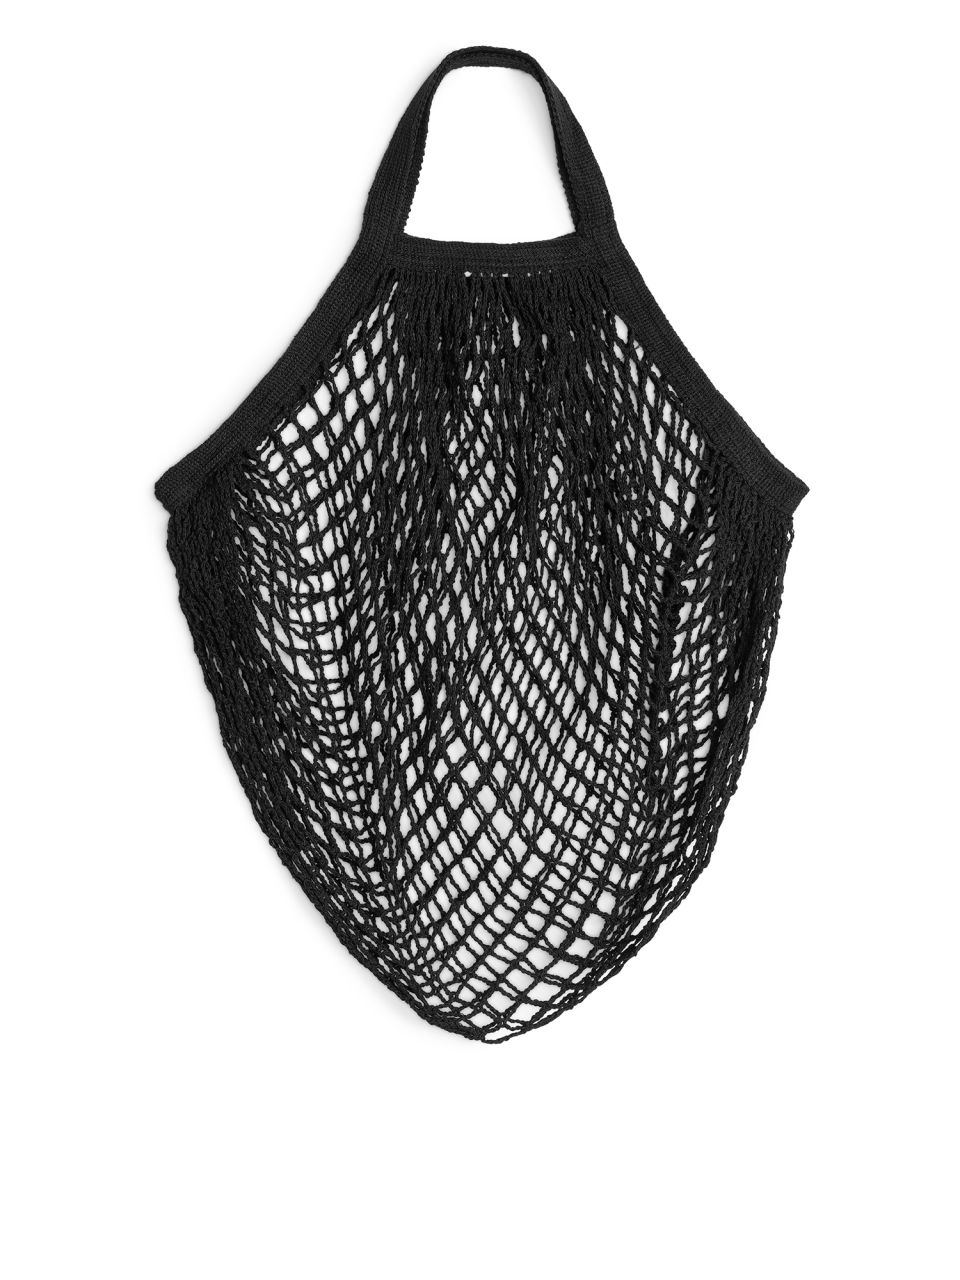 Look good and get all your shopping in this GOTs Certified string bag also available in long handle and in cream. Visit    https://www.bigpicturecollective.com/sho/organic-black-string-bag-short-handle